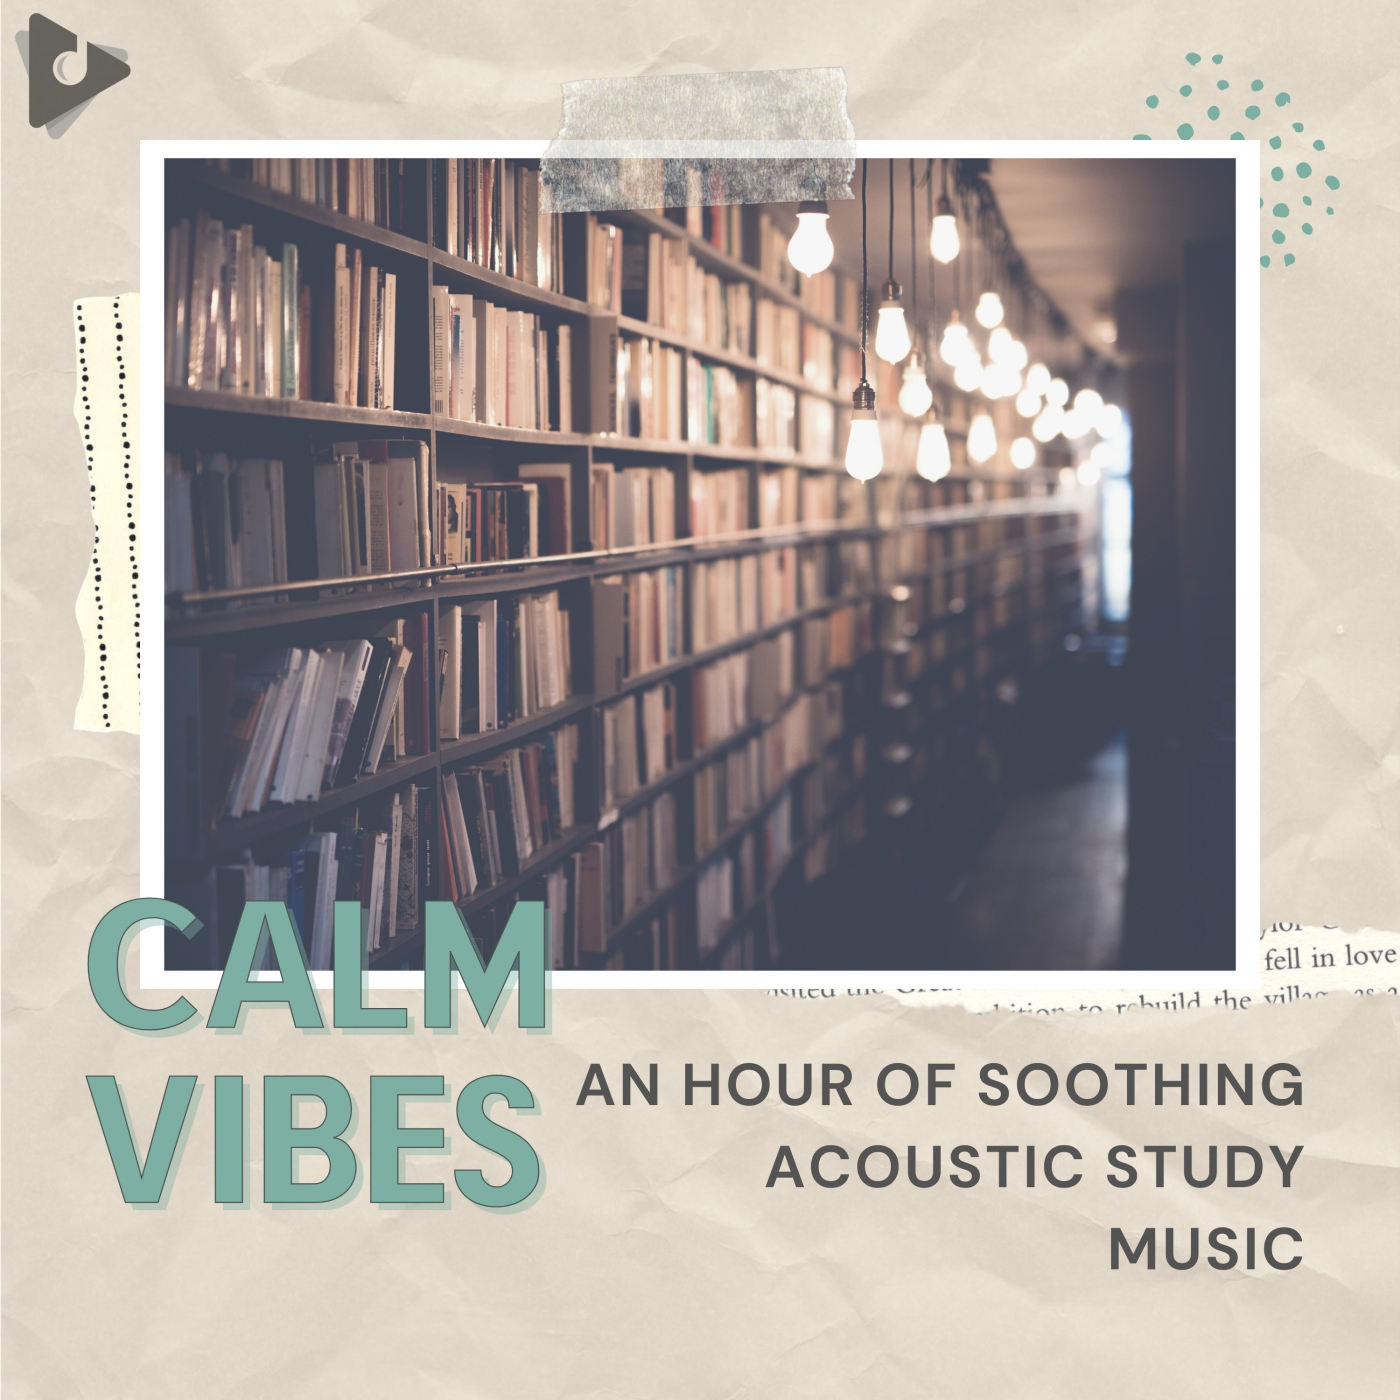 An Hour of Soothing Acoustic Study Music